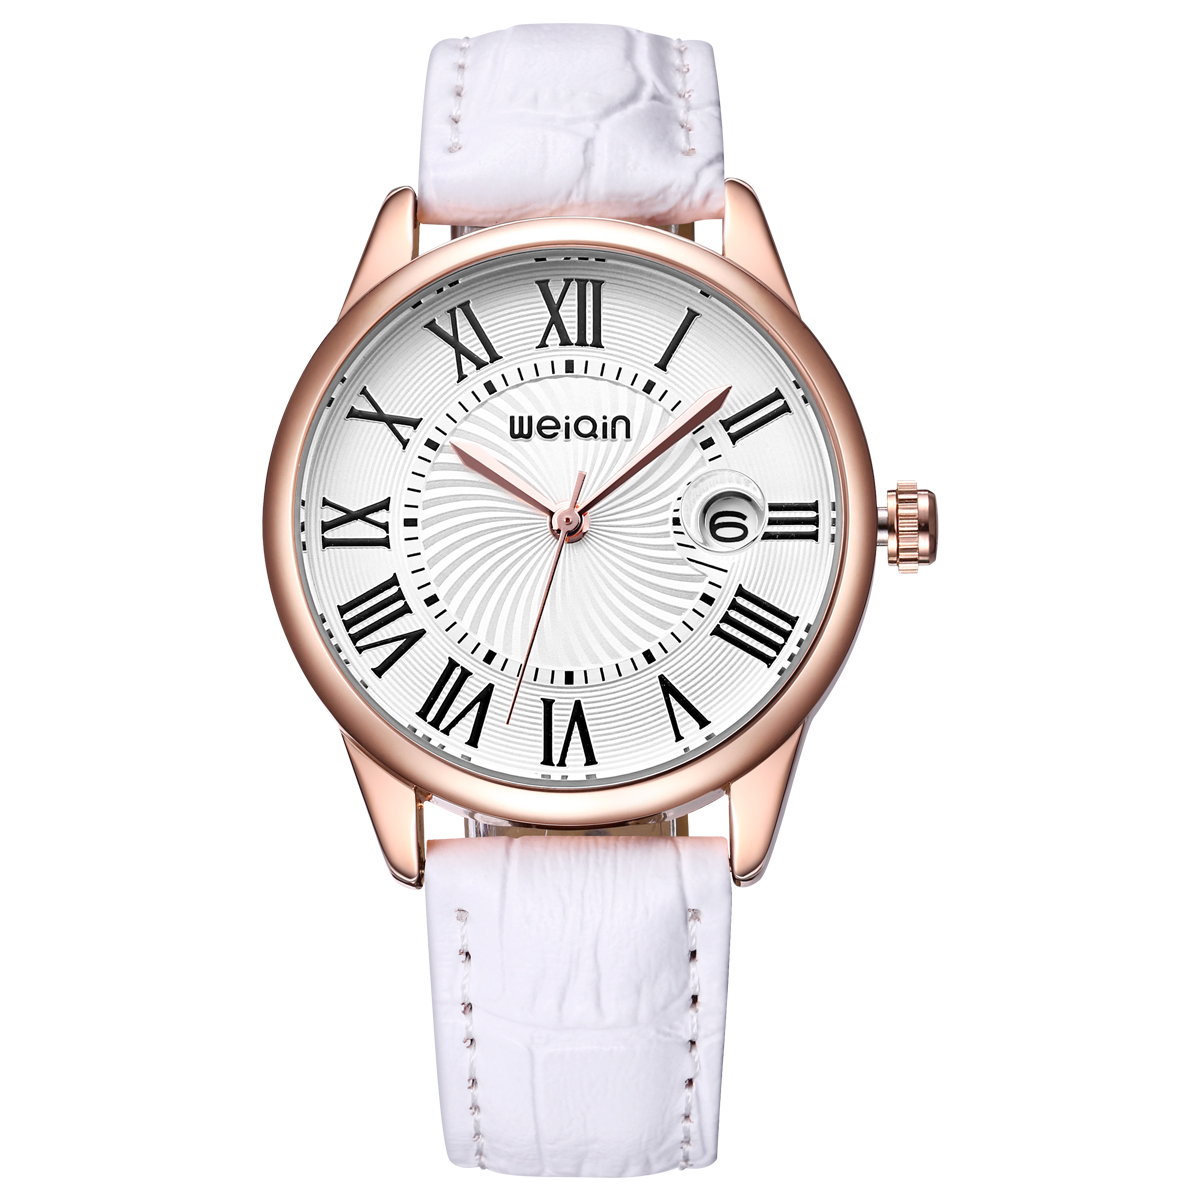 WEIQIN Genuine Leather Strap Luxury Watch Women Magnifying Glass Ladies Wristwatch Fashion Casual Rome Number Watch Relogios<br><br>Aliexpress